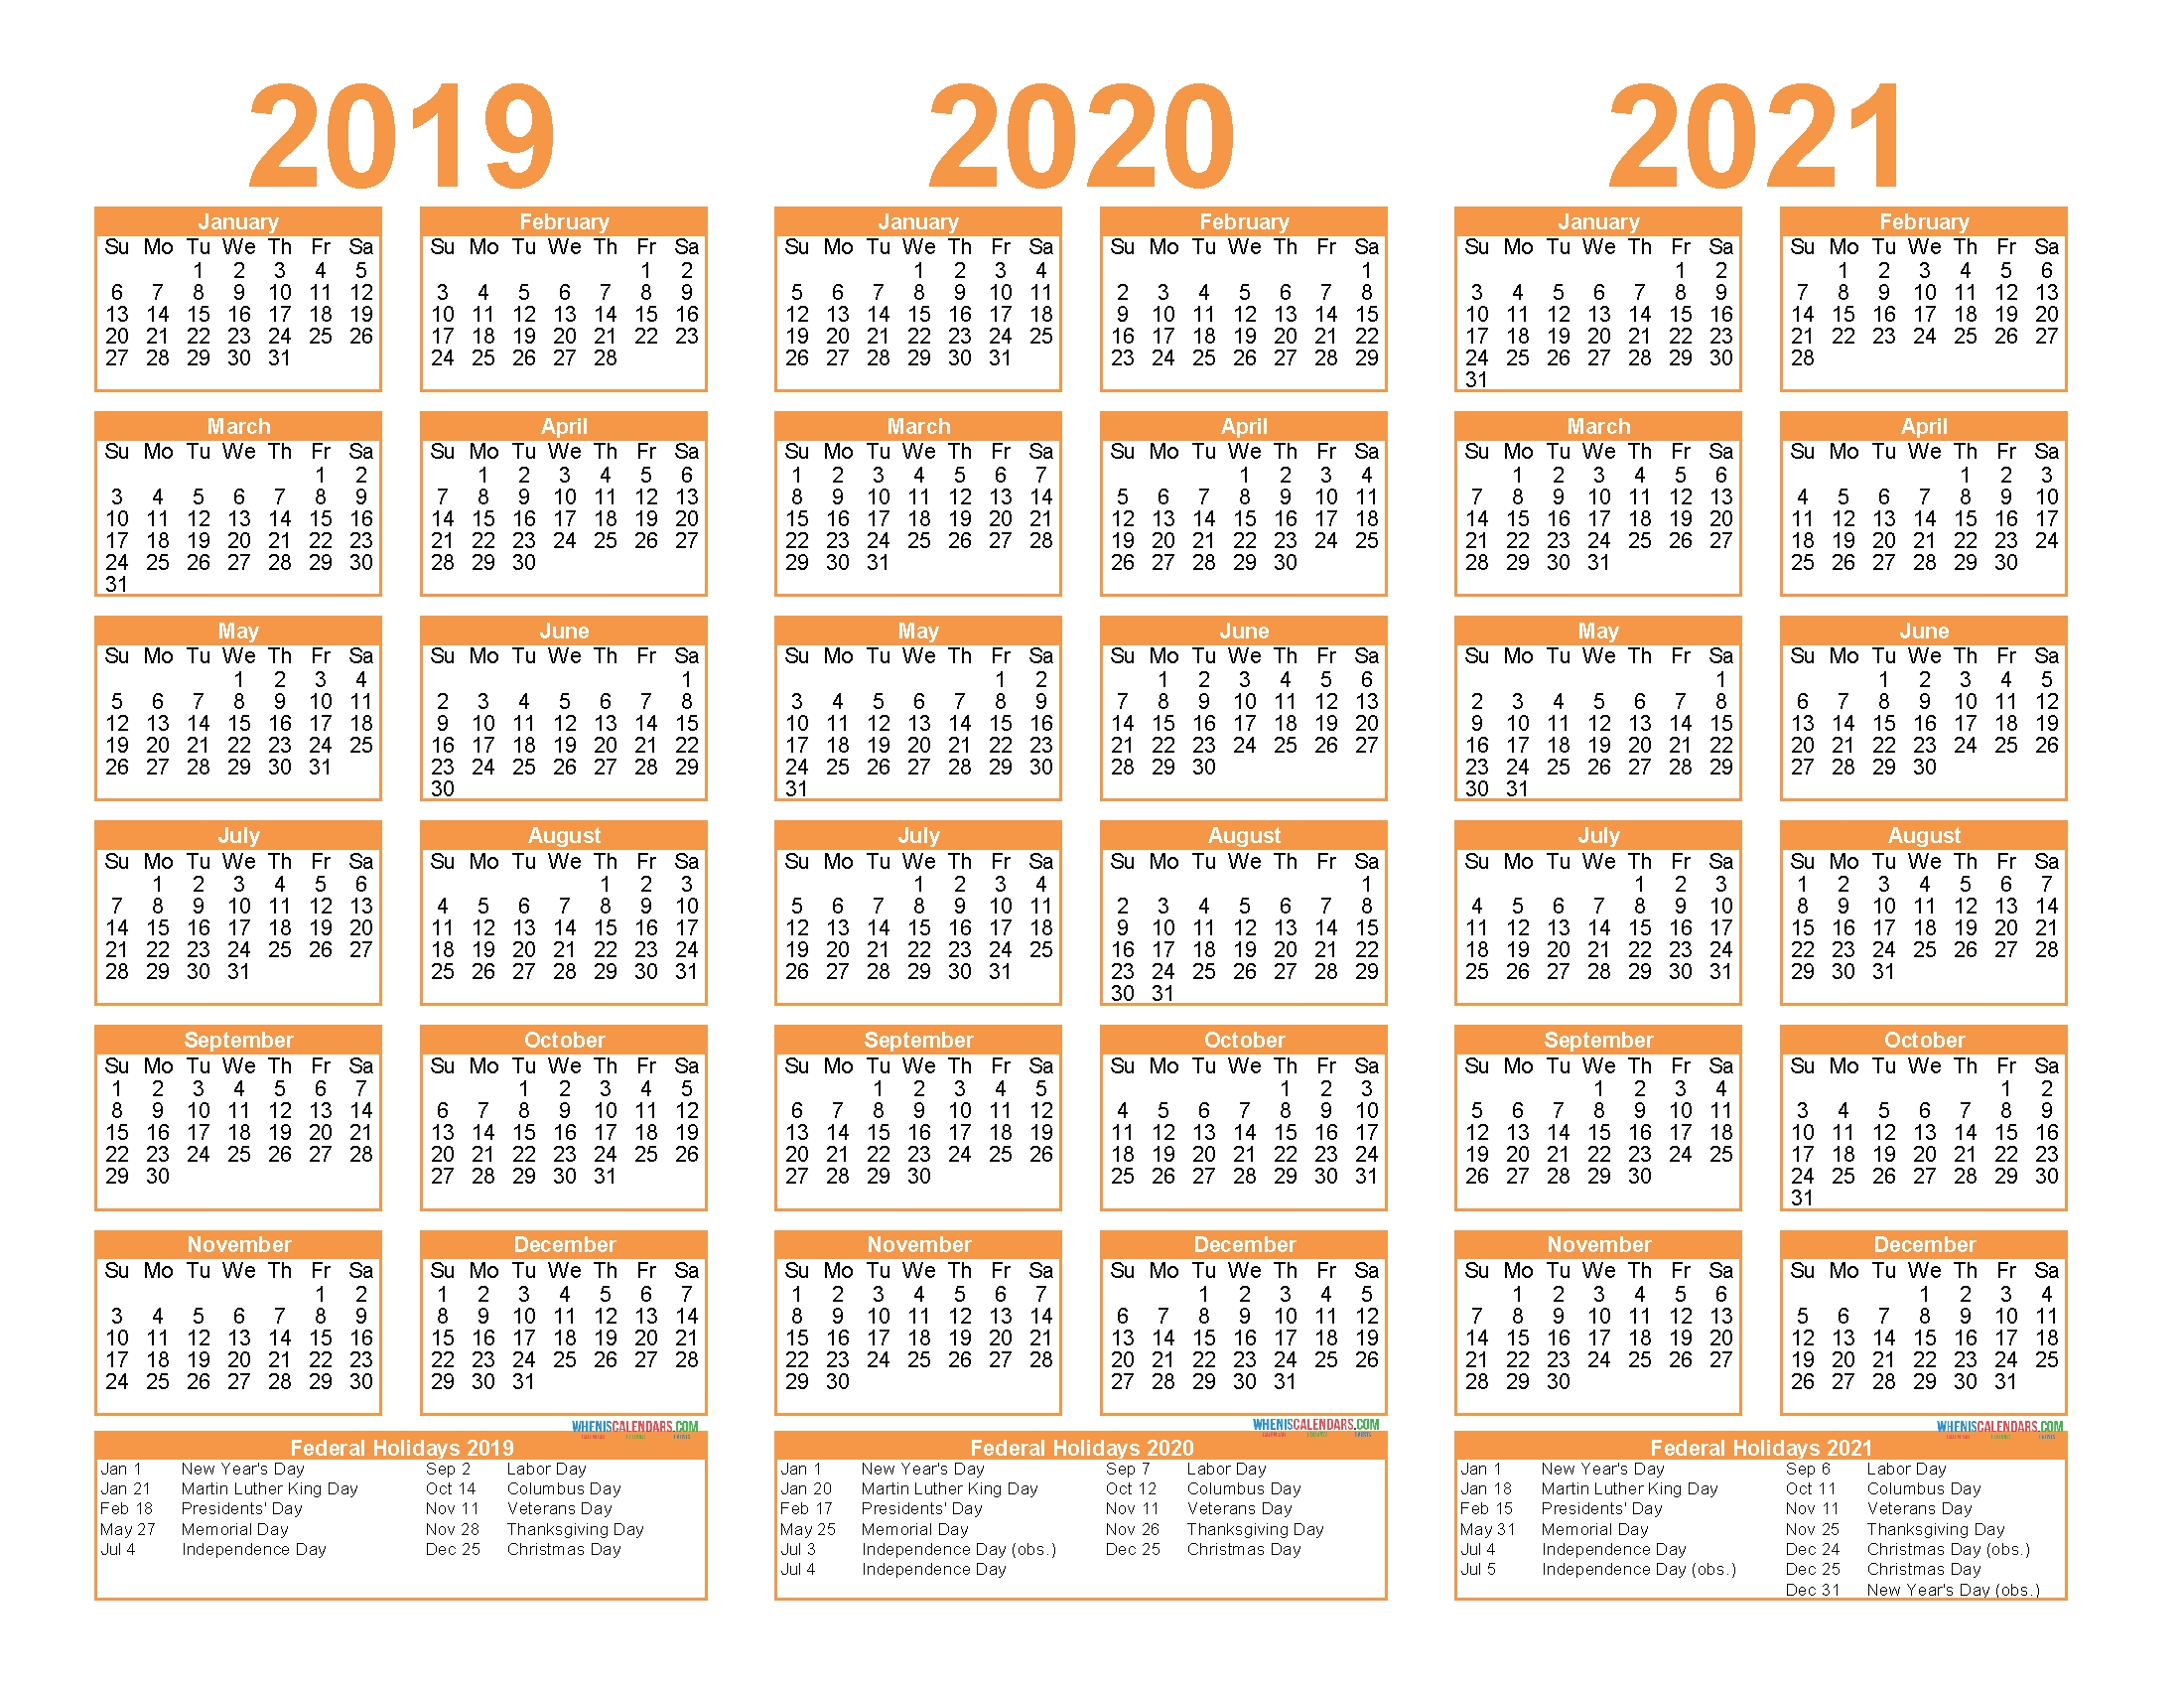 3 Year Calendar 2020 To 2021 Excel   Calendar For Planning within Three Year Calendar 2019 2021 2021 Calendar Pedia